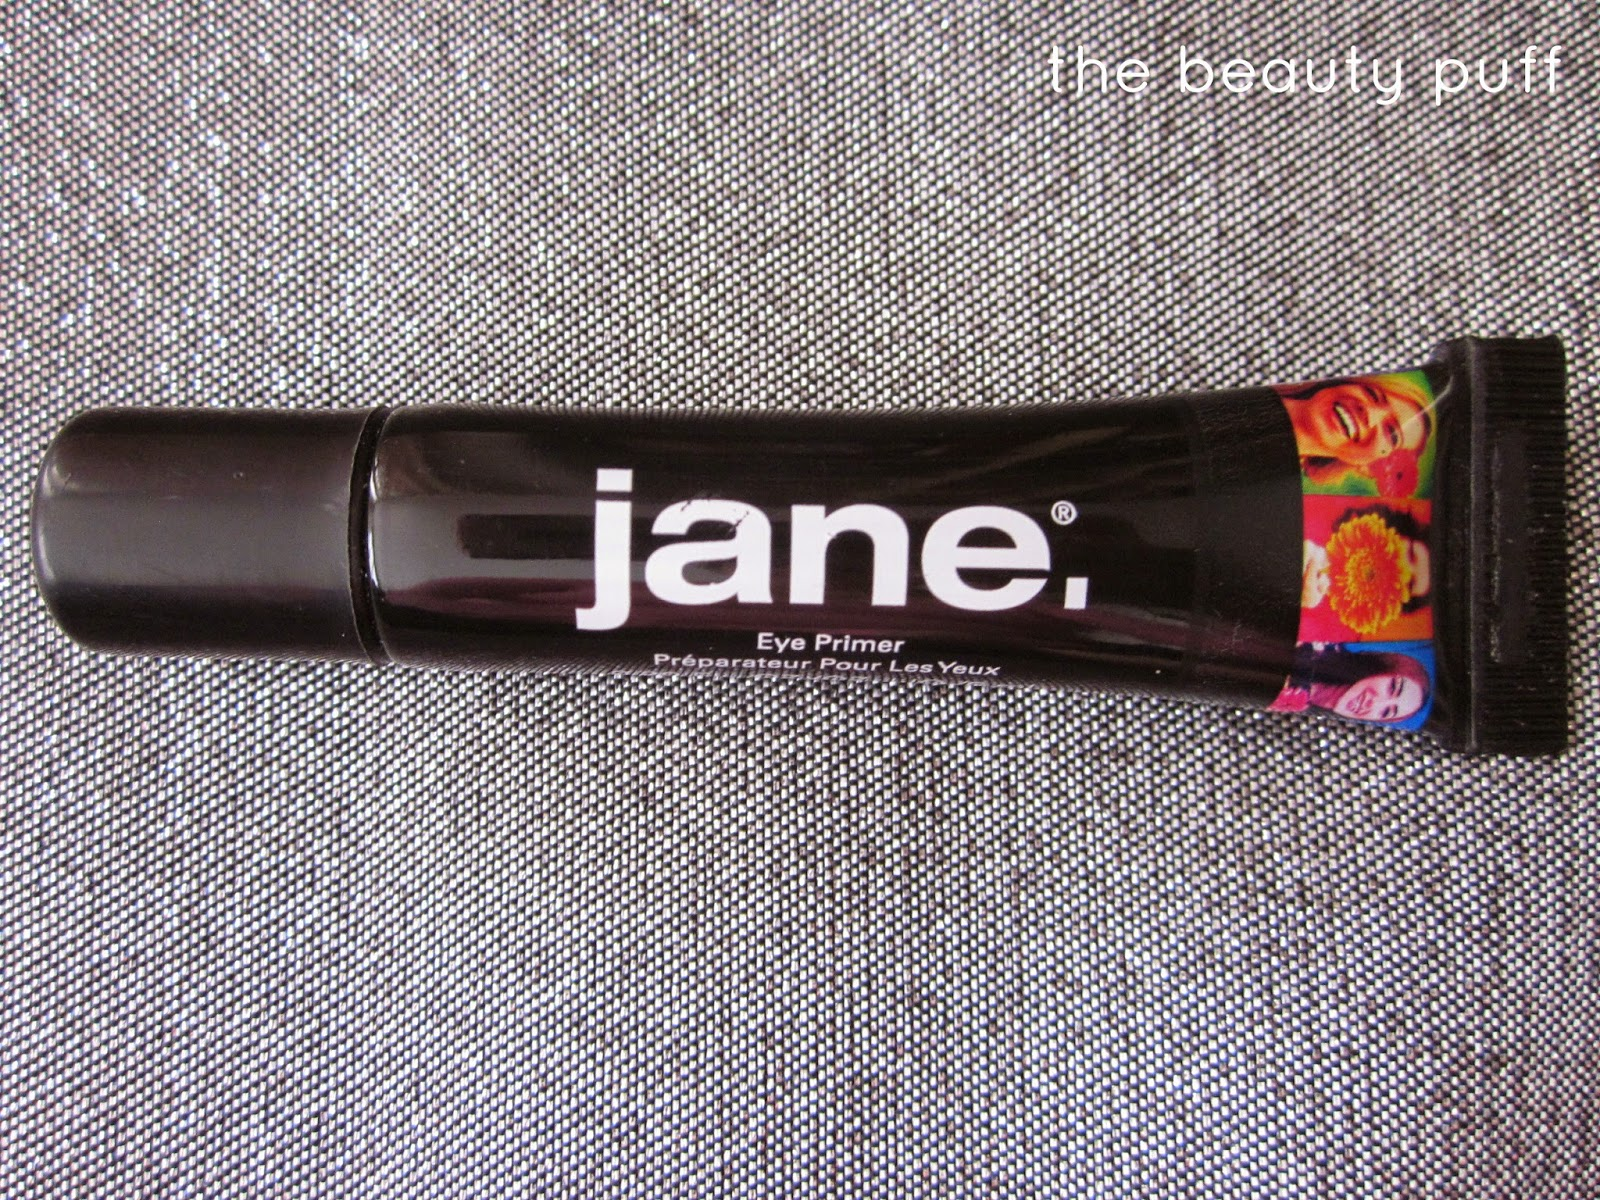 Jane Eye Primer - the beauty puff